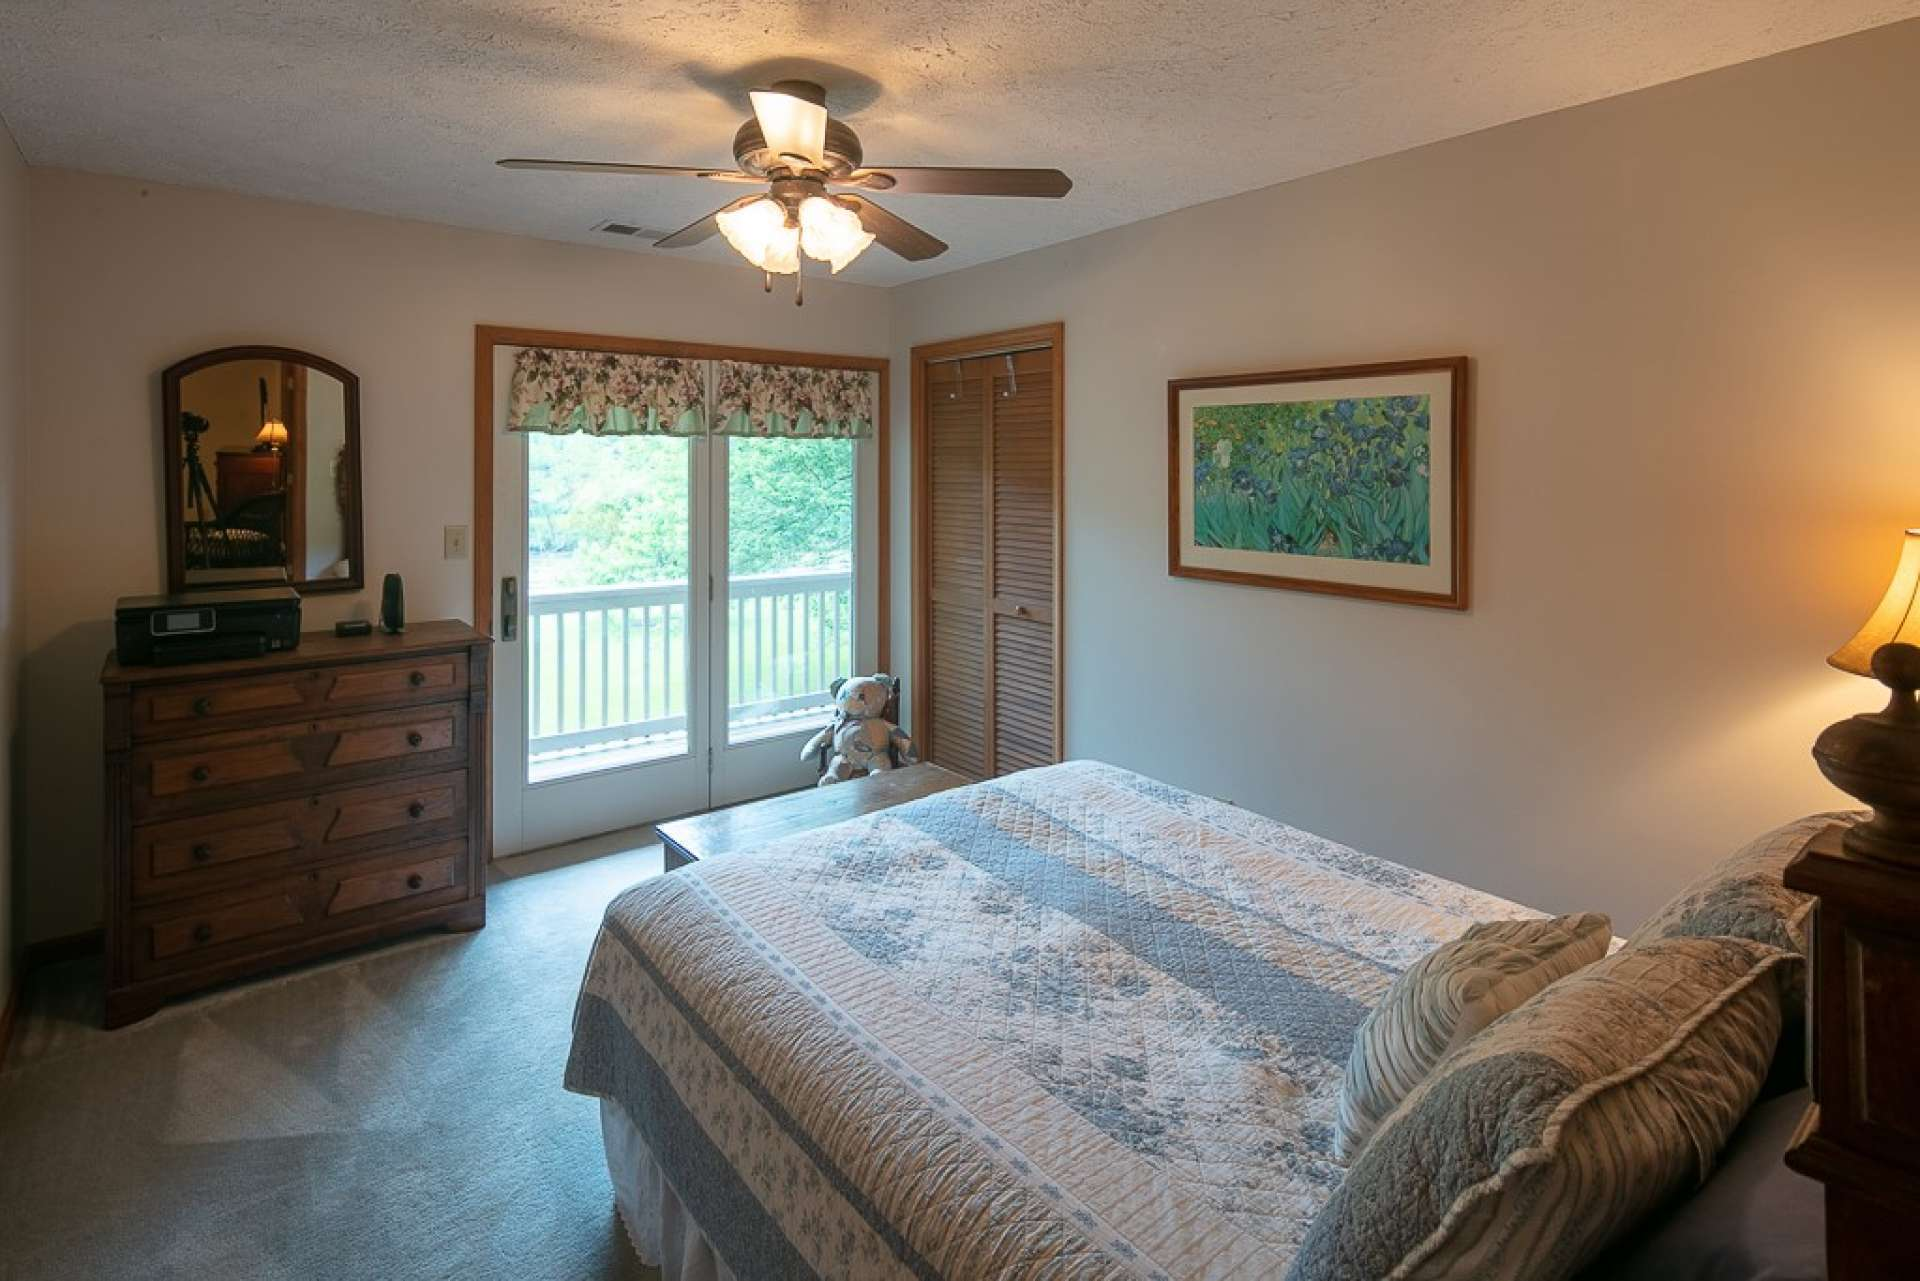 The upper level offers three bedrooms and a full bath with two vanities and tub/shower combo. This upper level bedroom has access to the upper level balcony.